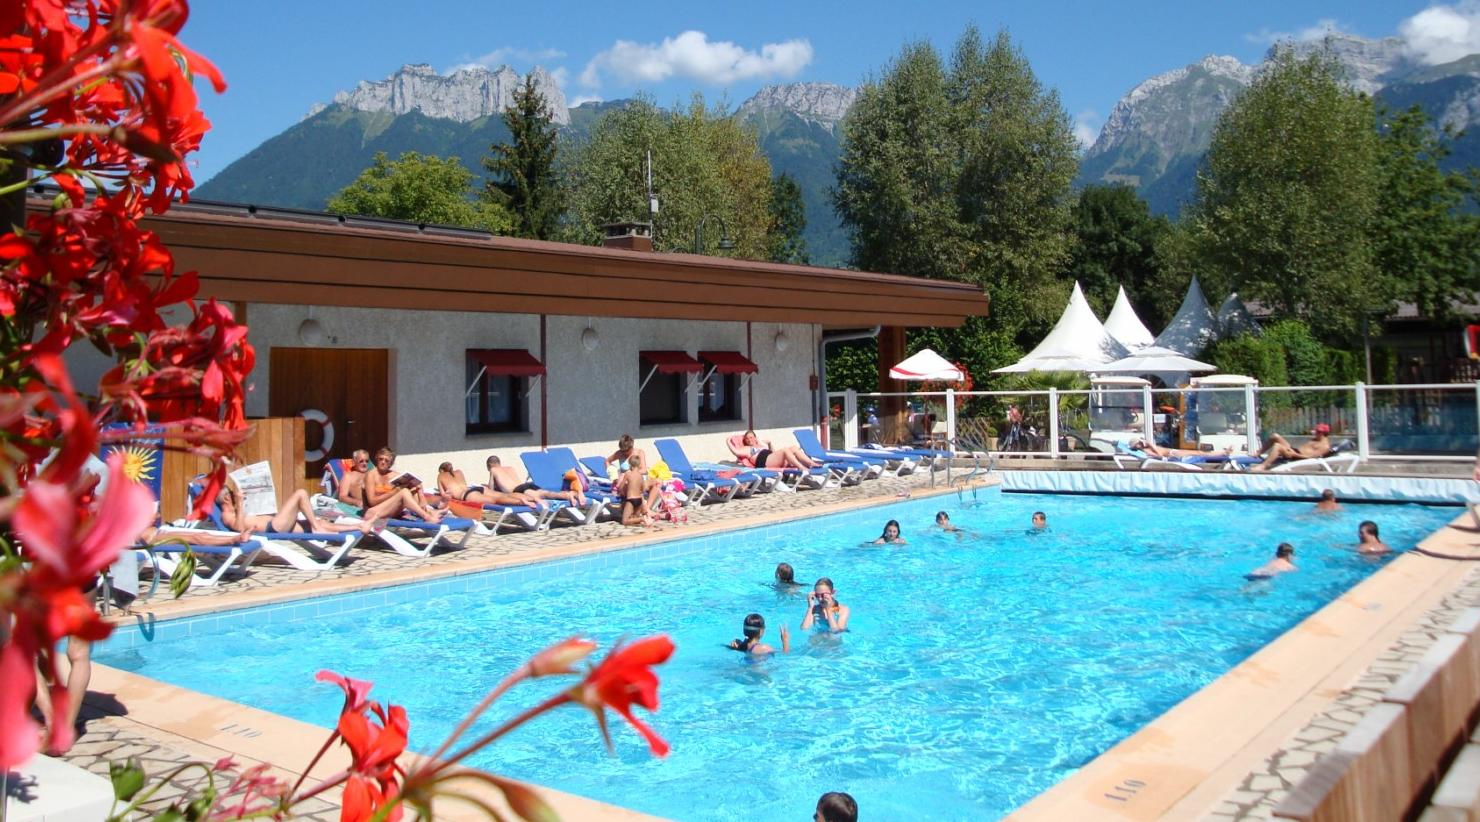 Camping Europa : Camping Piscine Annecy En Haute Savoie ... concernant Camping Annecy Piscine